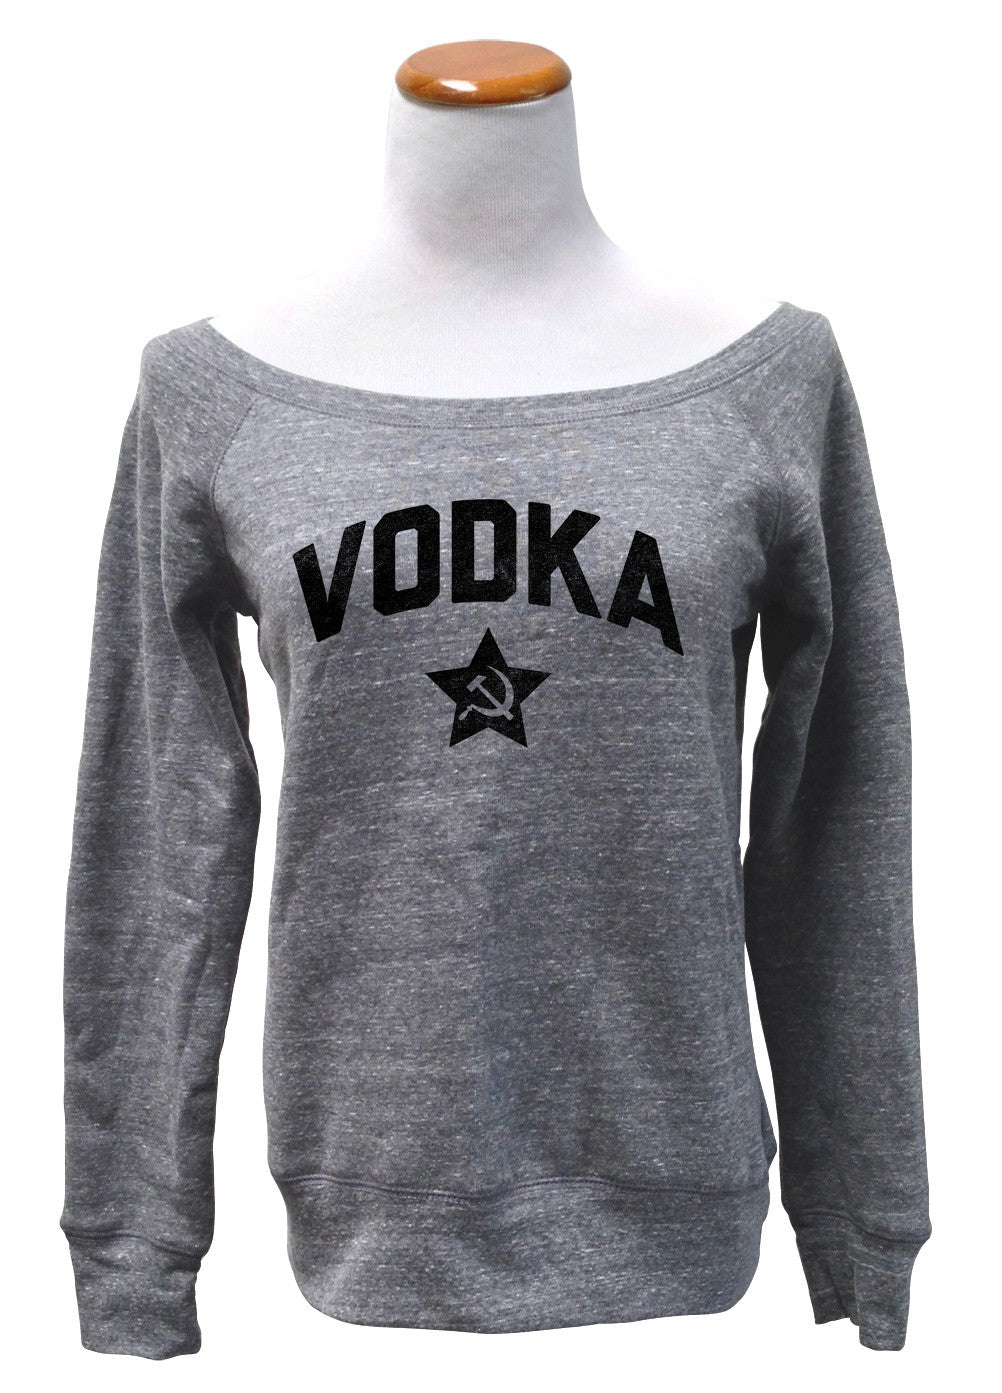 Women's Team Vodka Scoop Neck Fleece Cool Funny Drinking